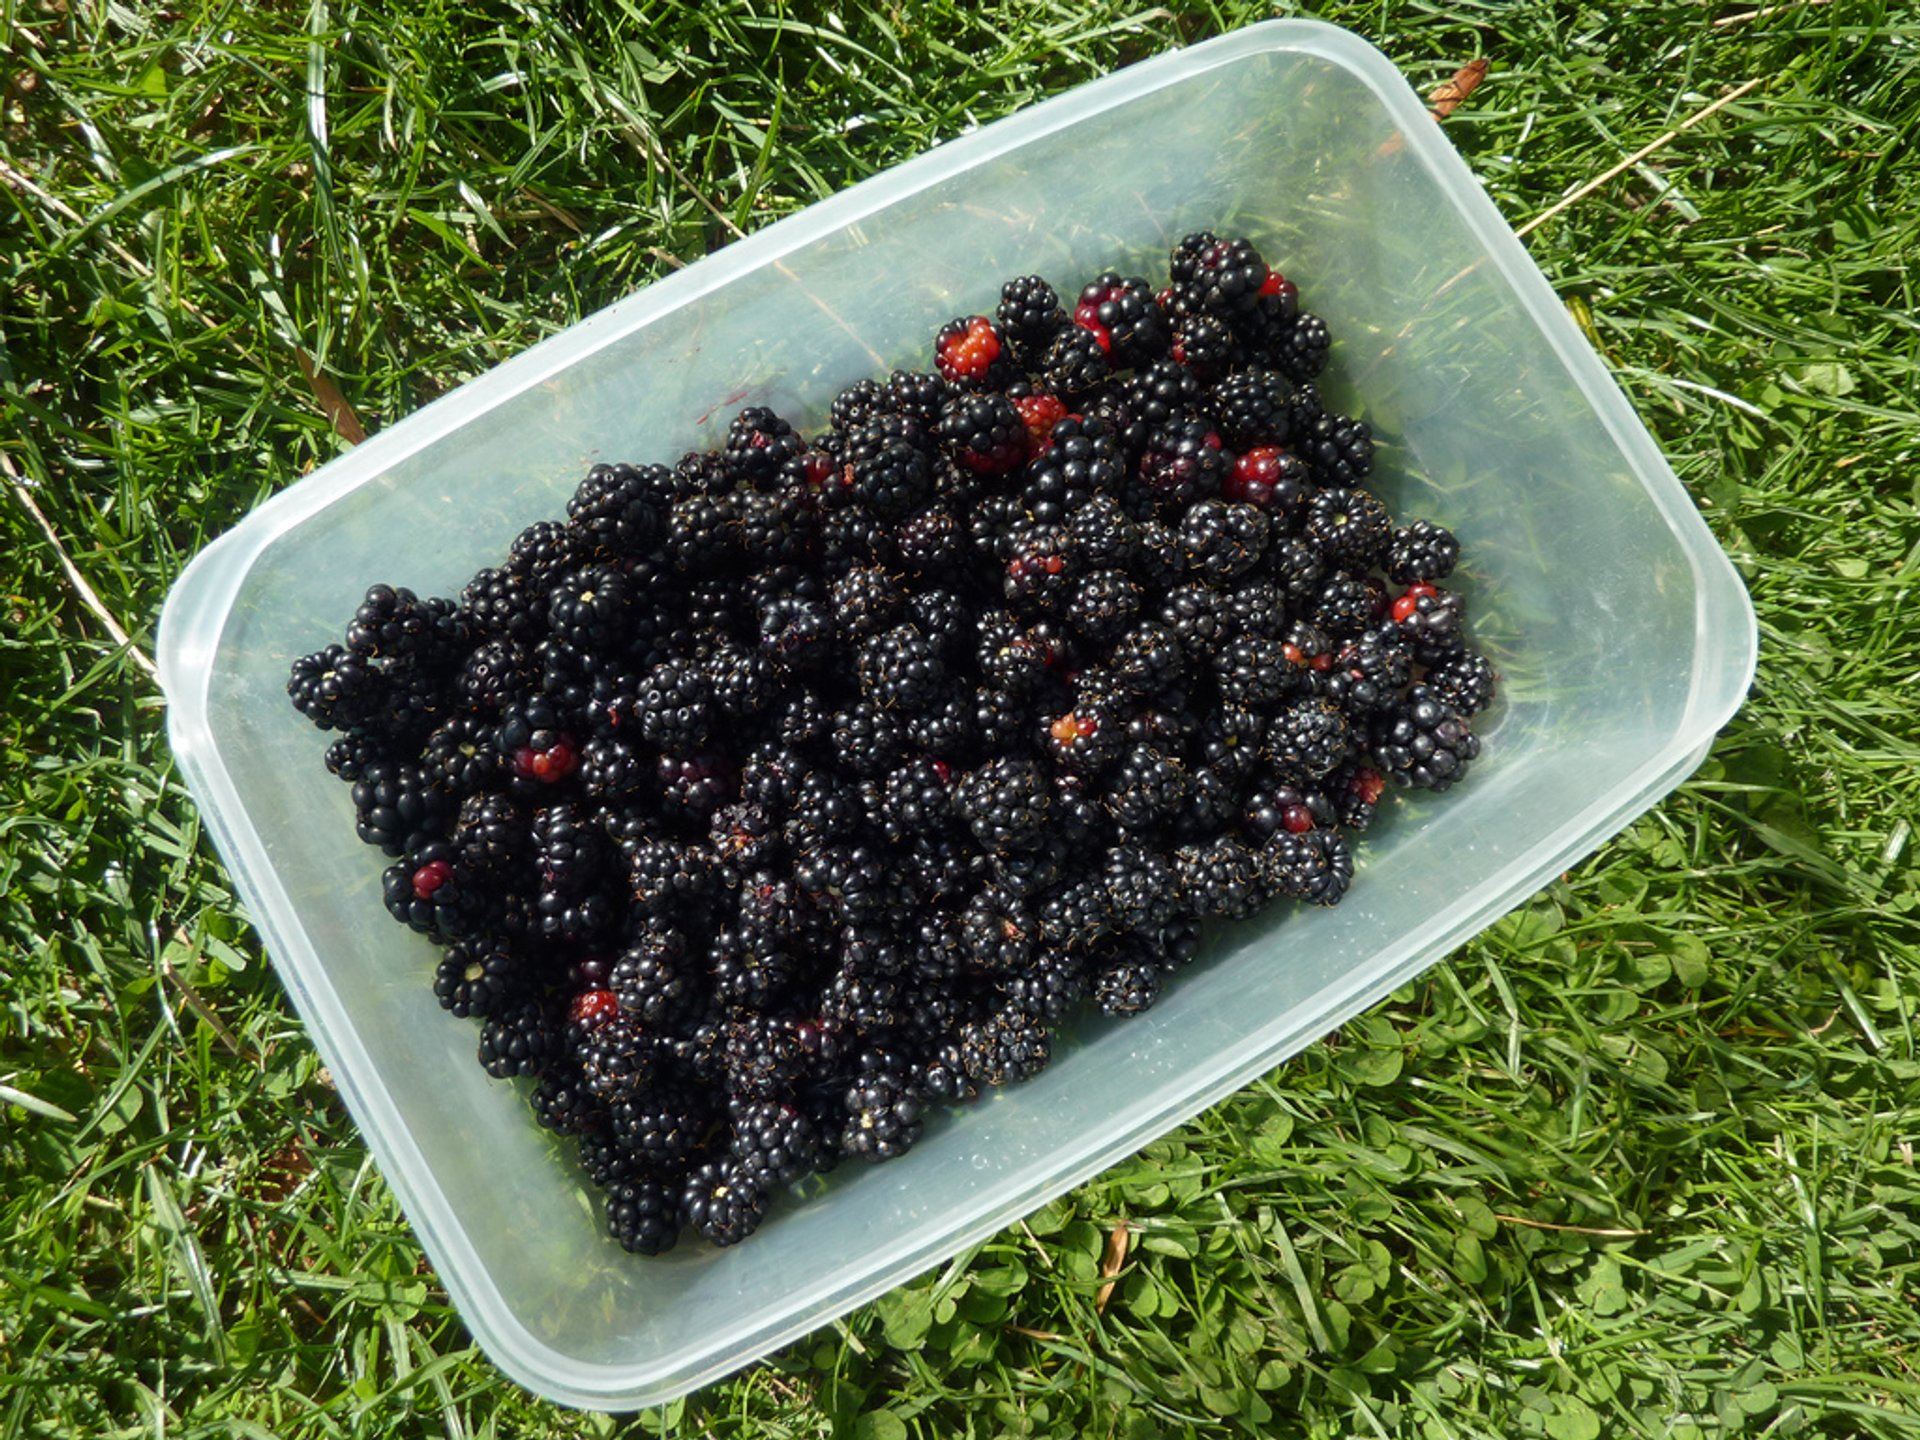 Box of blackberries 2019